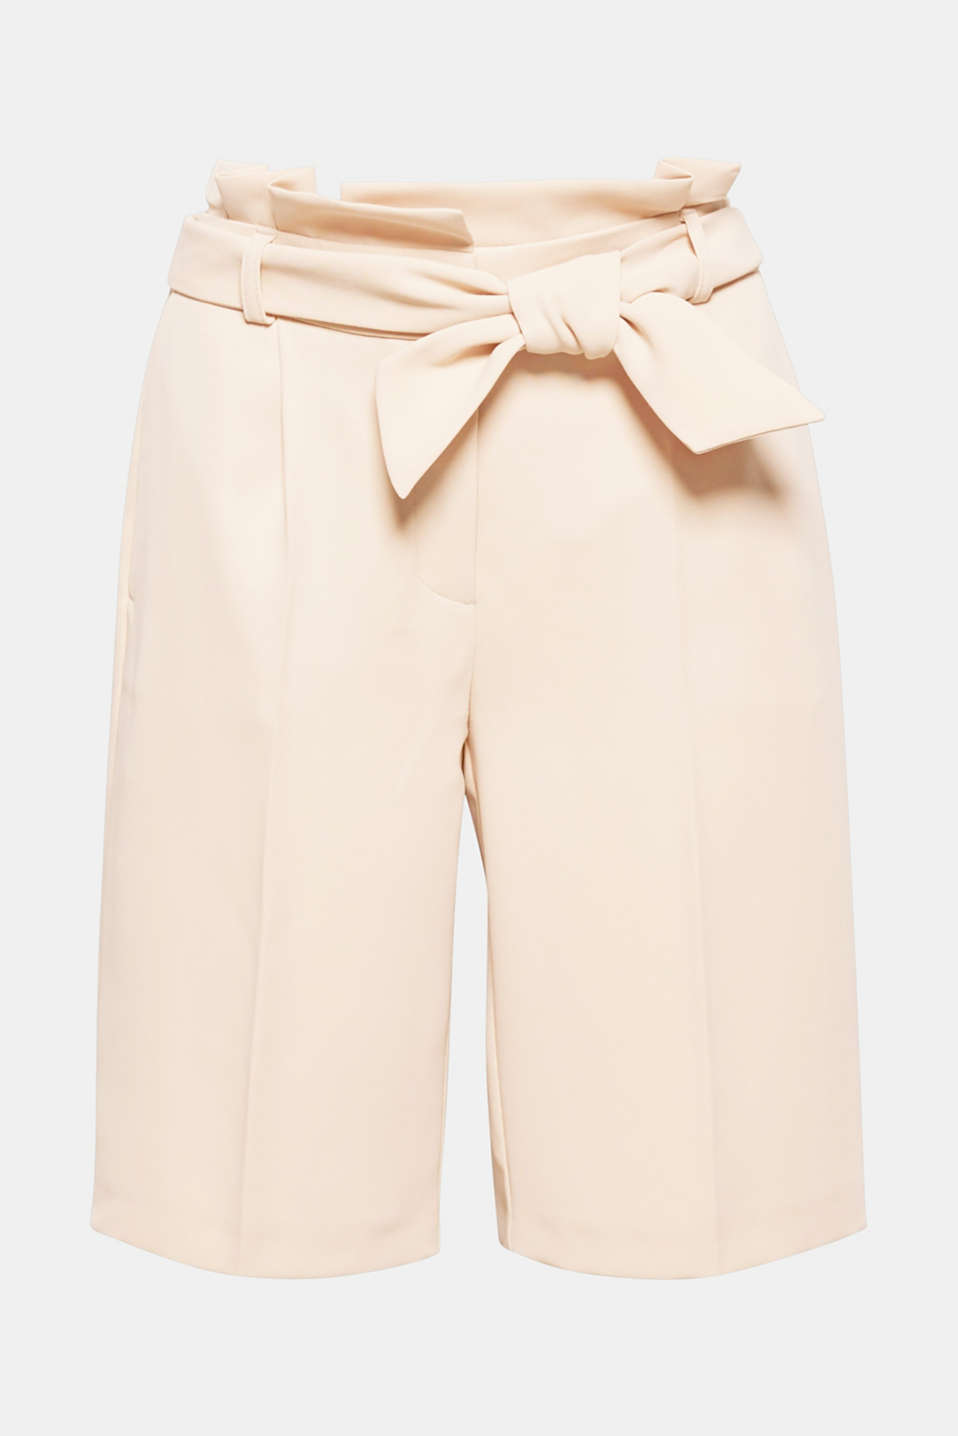 Trend: paperbag trousers. These shorts stand out with their characteristic waistband and flowing crêpe fabric.